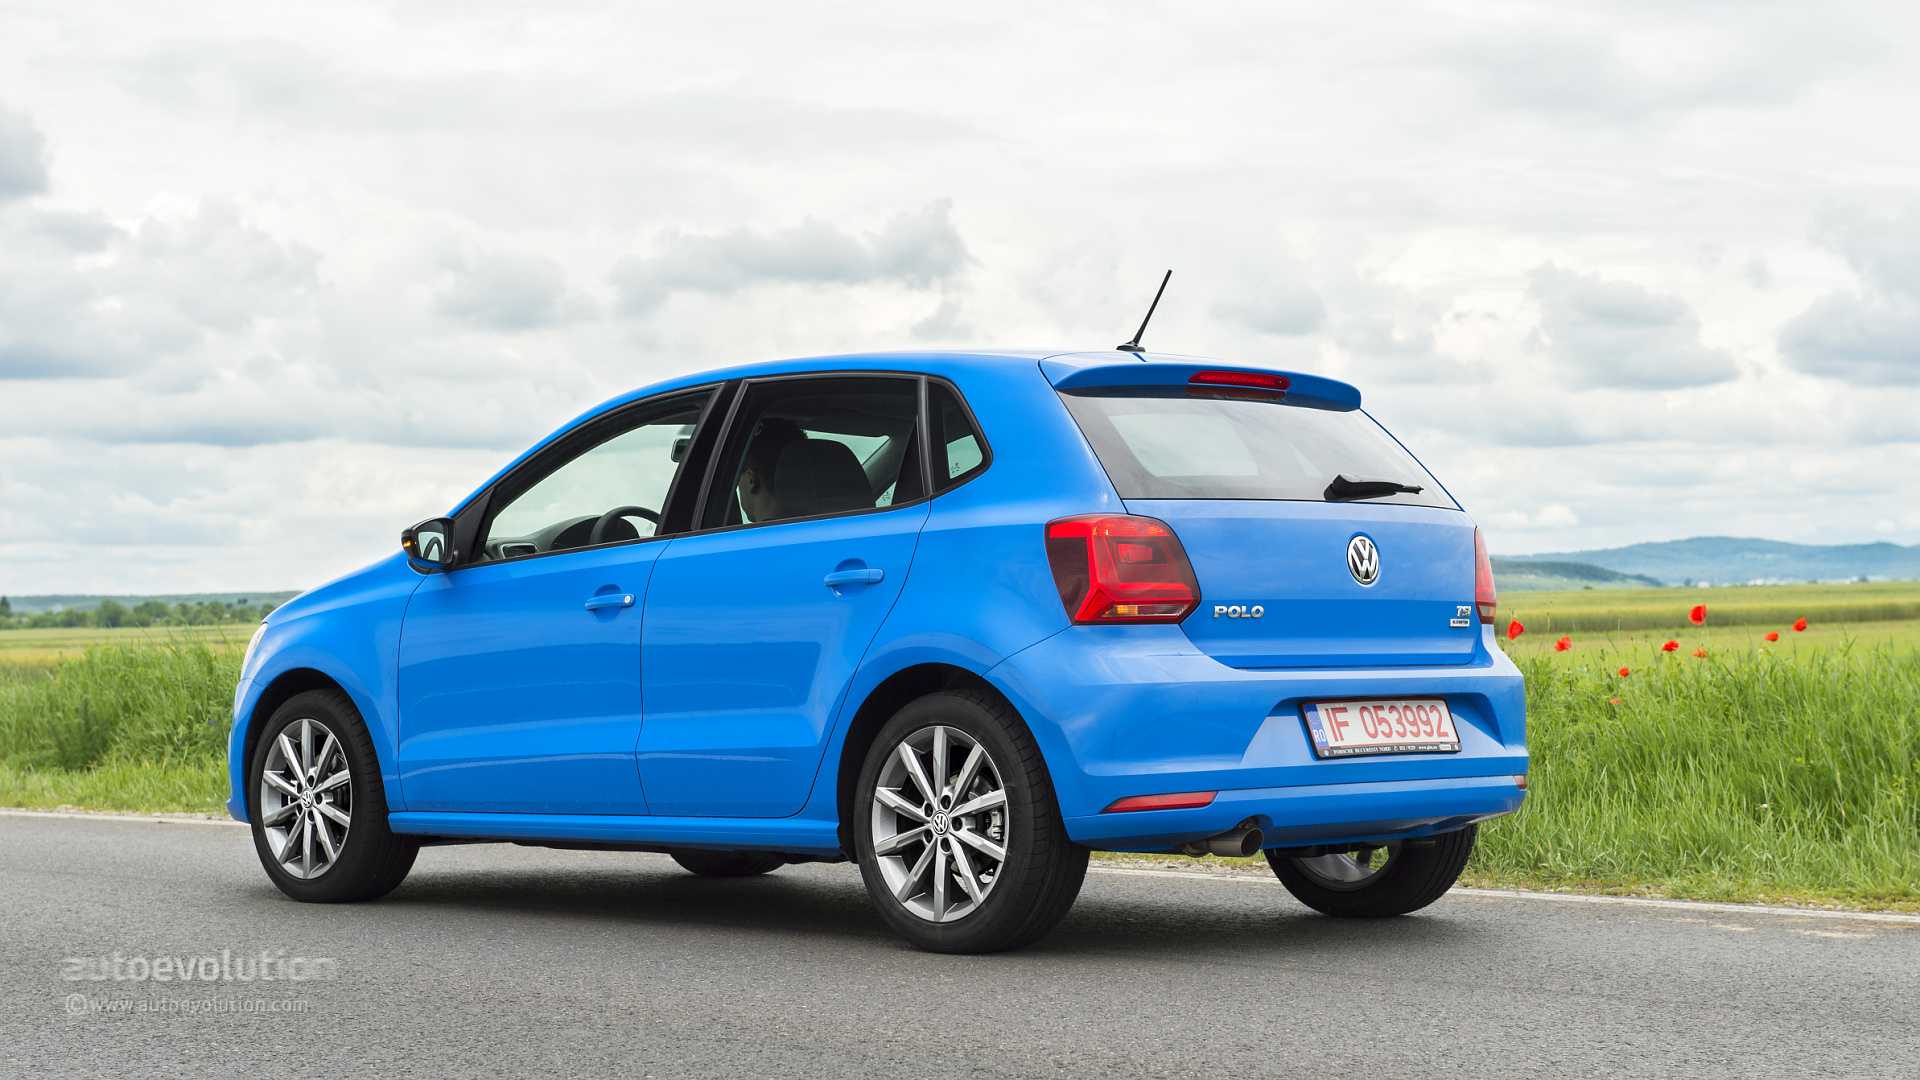 2014 VOLKSWAGEN Polo Facelift Review - autoevolution